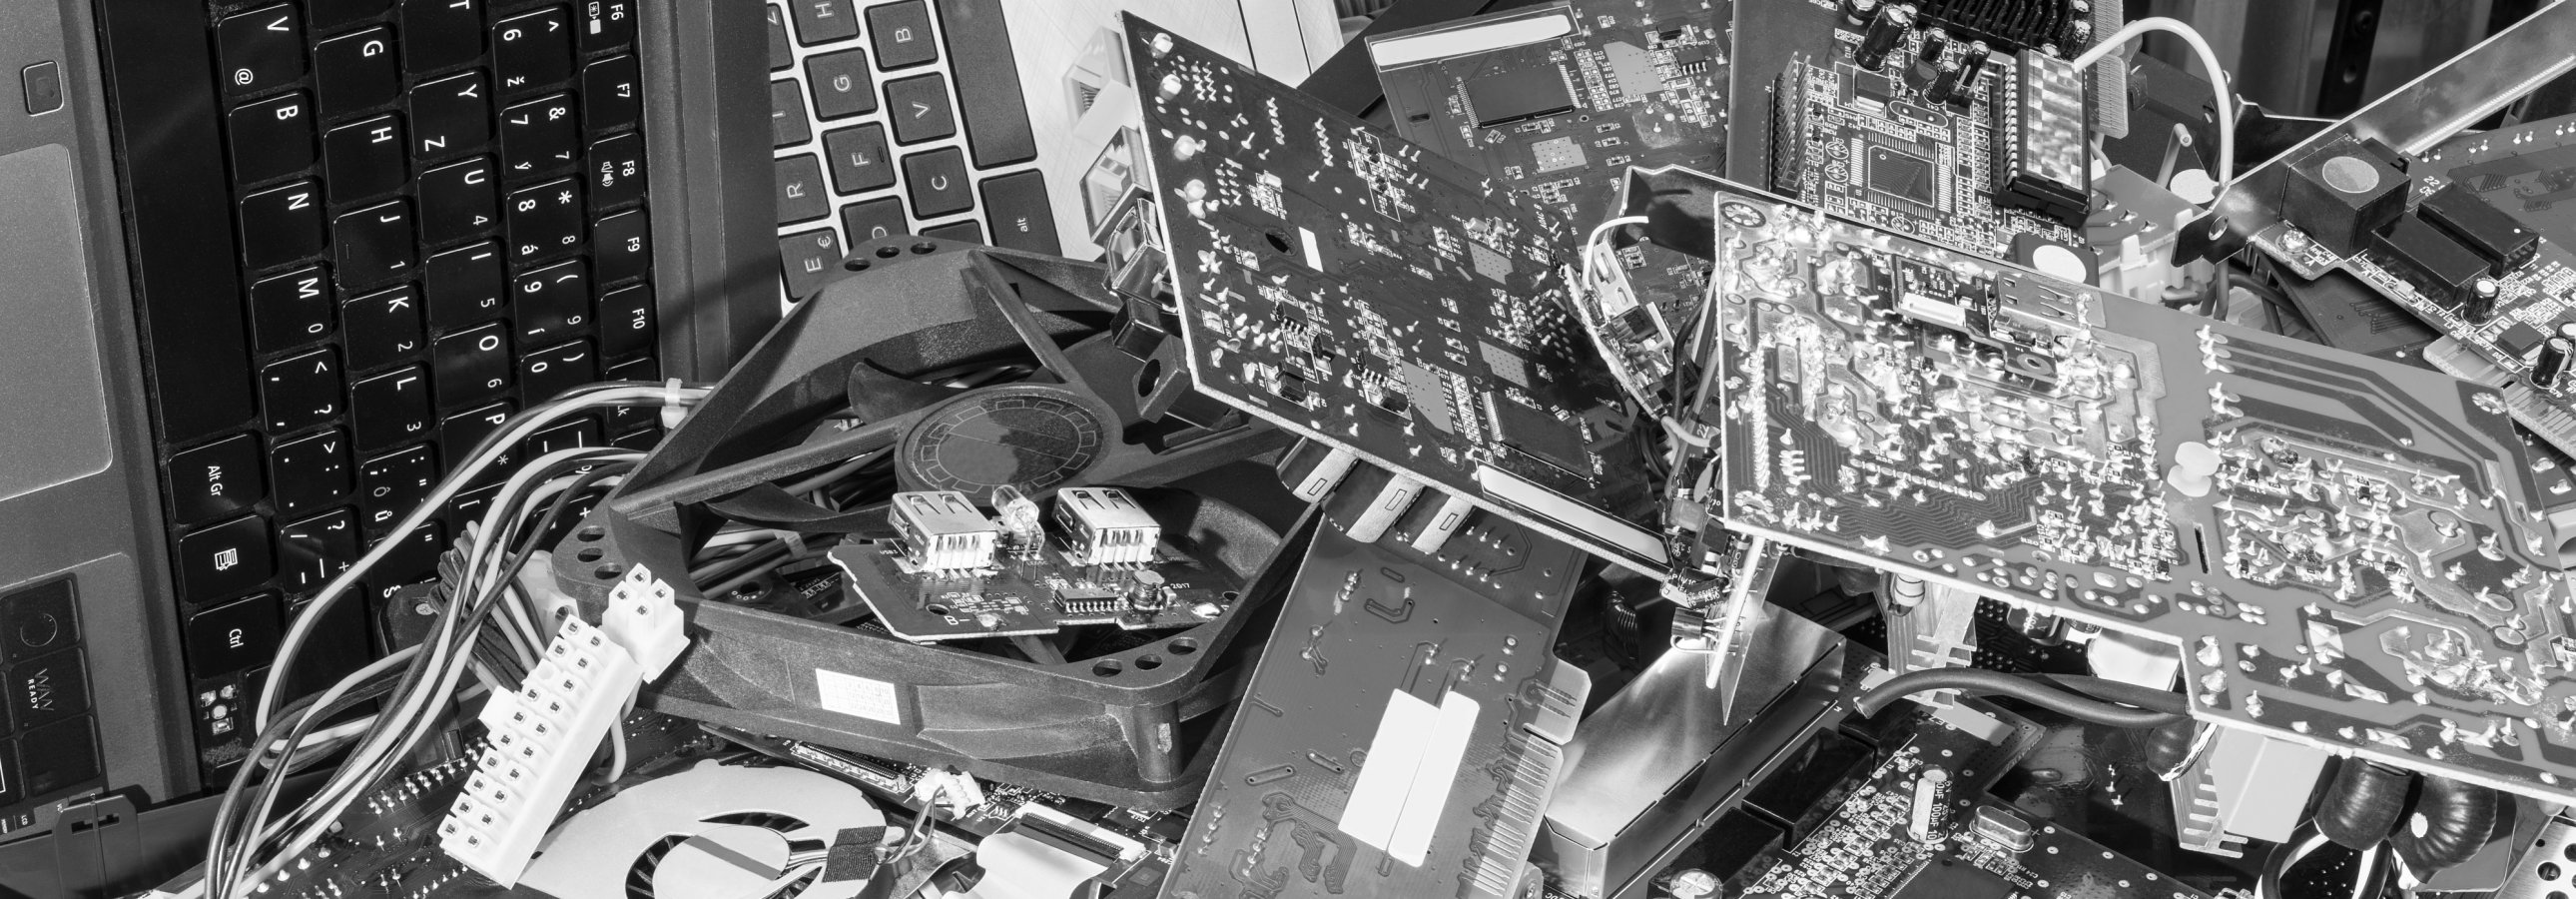 If You Want to Feel Better About E-Waste, You Have to Sell Stuff